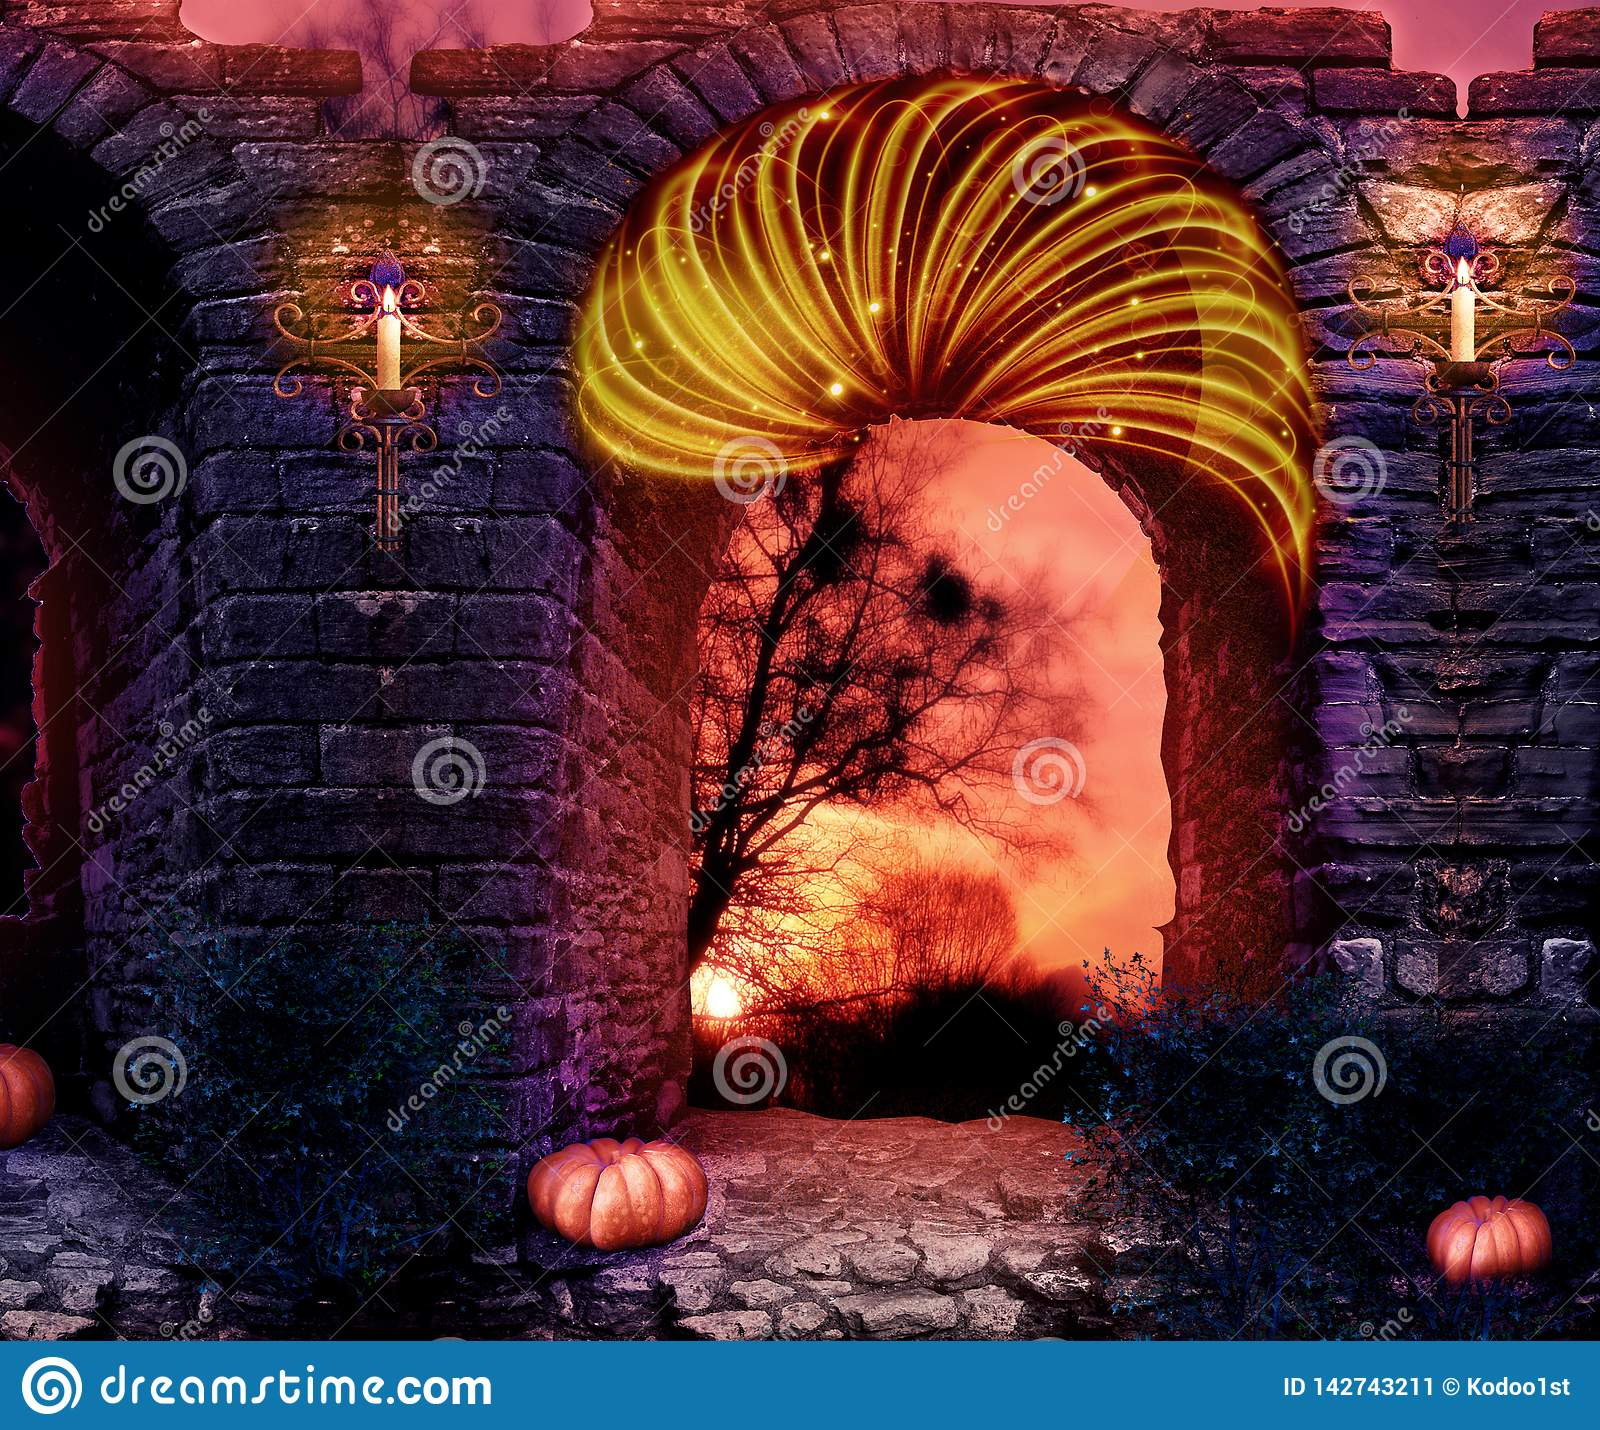 Abstract artistic 3d rendering illustration of a castle wall on a colorful red sky background